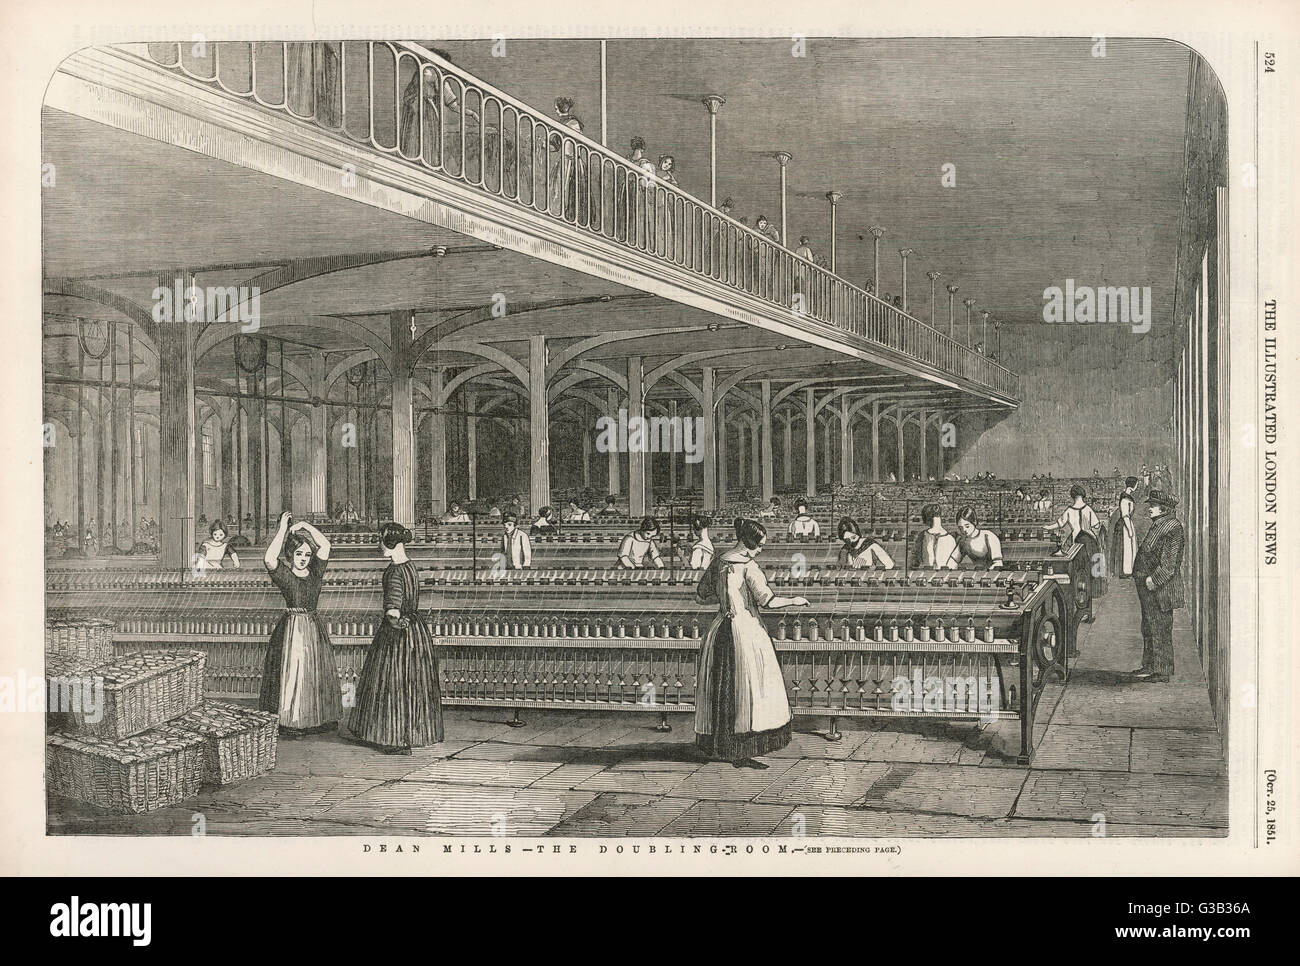 The doubling room at Dean  Mills, Lancashire, a cotton  mill.        Date: 1851 - Stock Image